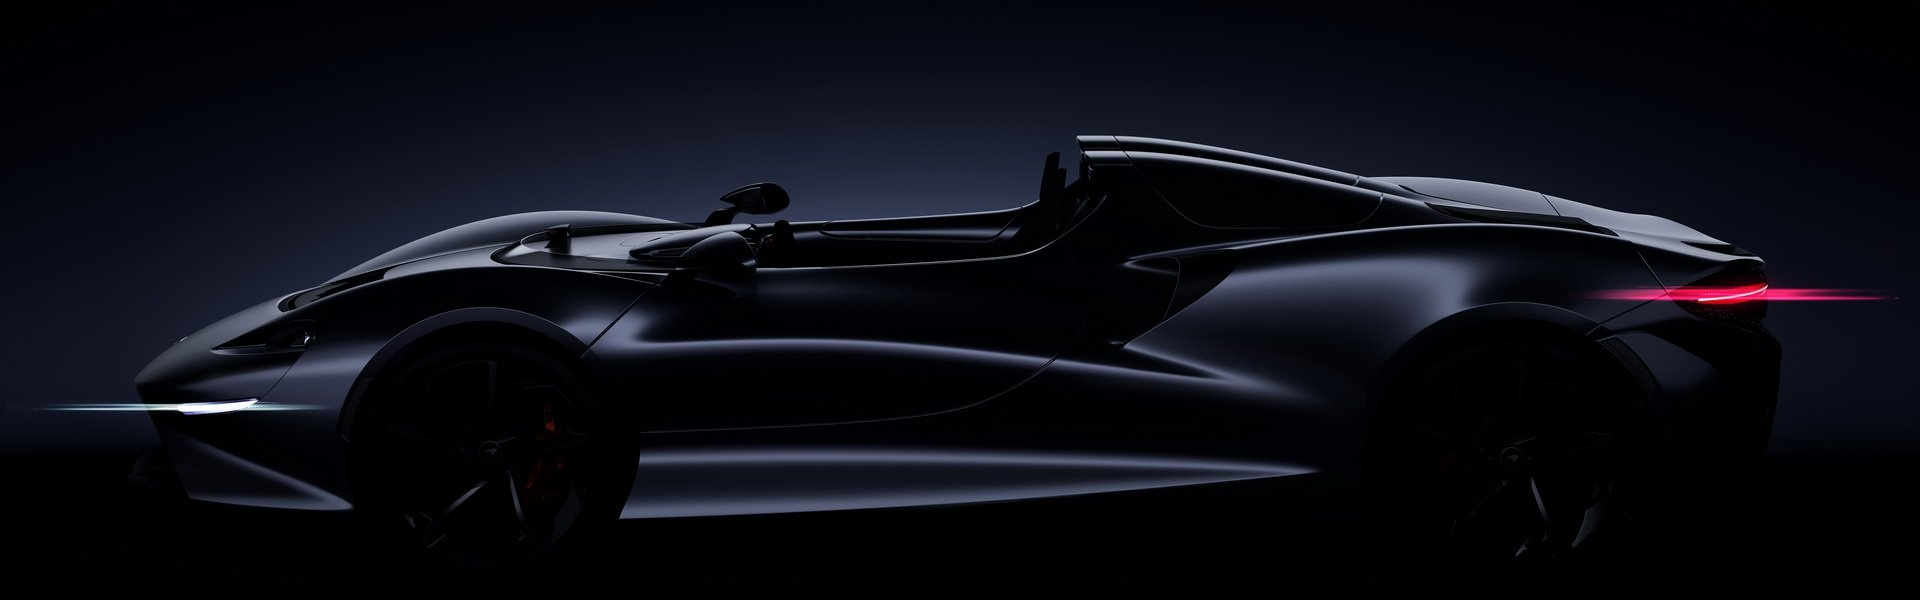 40e36840-mclaren-new-ultimate-series-teased-1.jpg